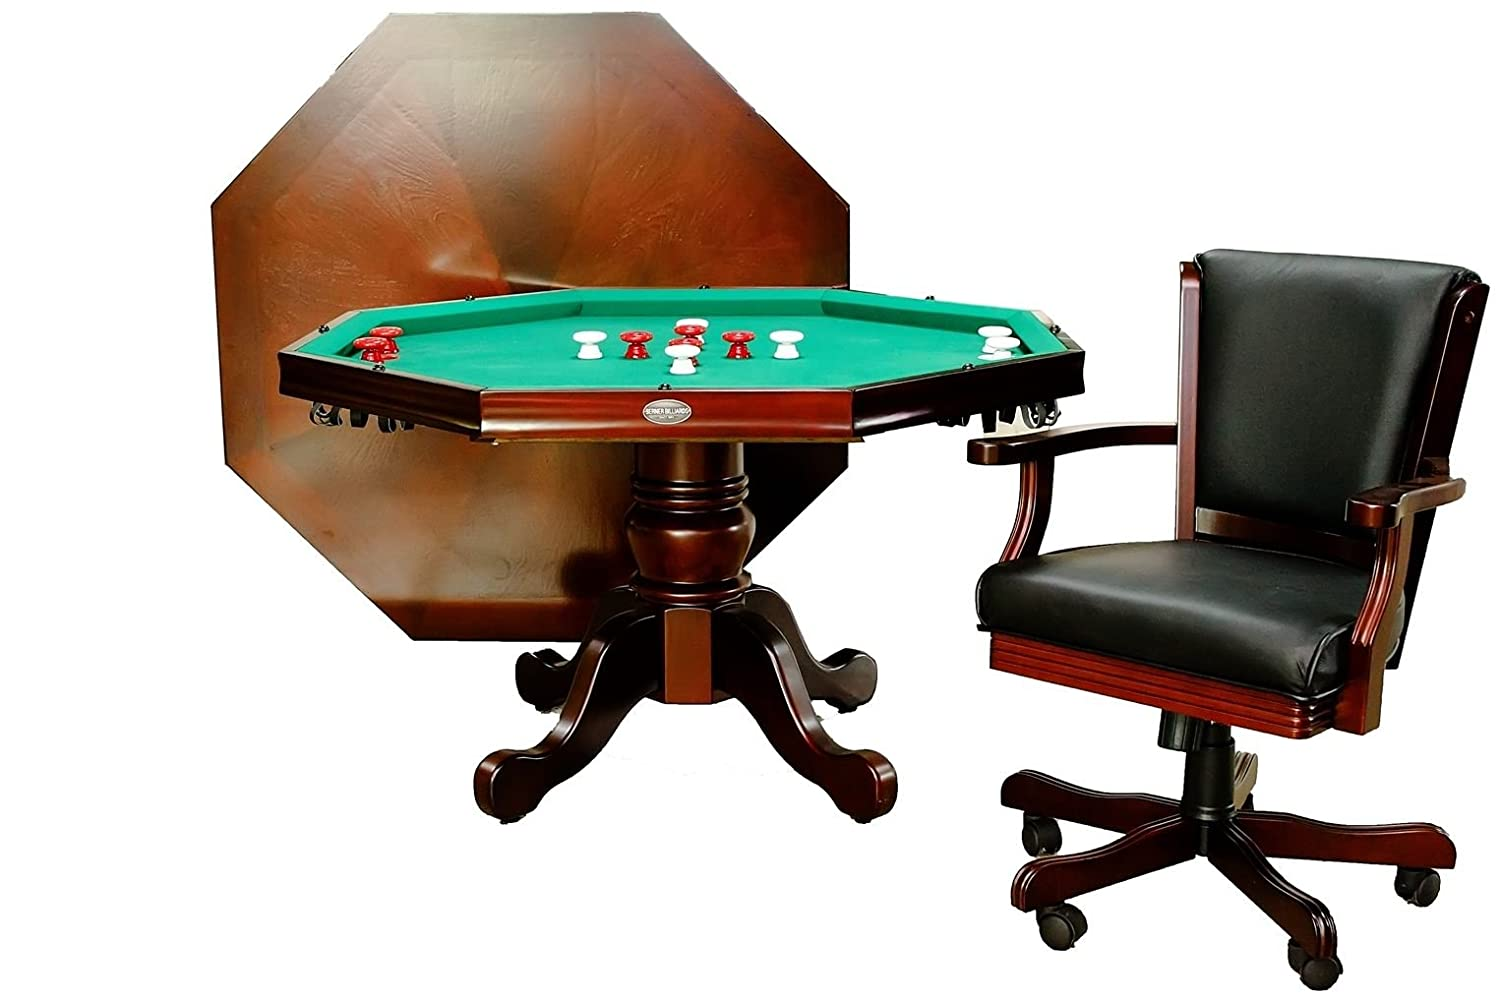 Amazon.com  3 in 1 Game Table - Octagon 54  Bumper Pool Poker u0026 Dining with 4 Chairs in Mahogany By Berner Billiards  Combination Game Tables  Sports u0026 ...  sc 1 st  Amazon.com & Amazon.com : 3 in 1 Game Table - Octagon 54